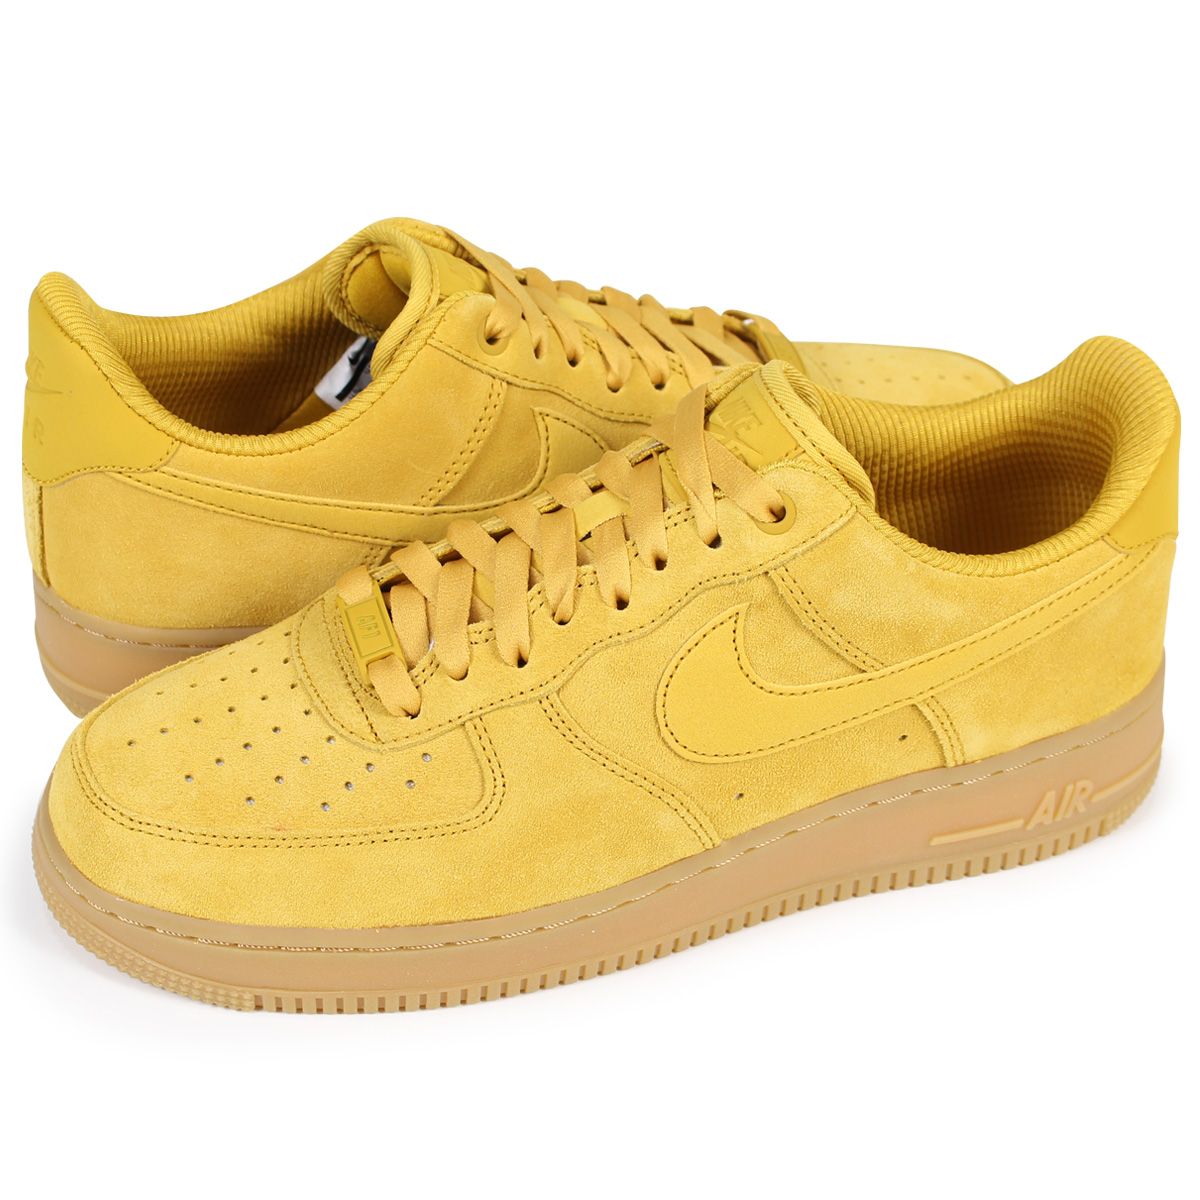 NIKE WMNS AIR FORCE 1 SE Nike air force 1 07 lady's men's sneakers 896,184- 700 yellow [load planned Shinnyu load in reservation product 1/20  containing]